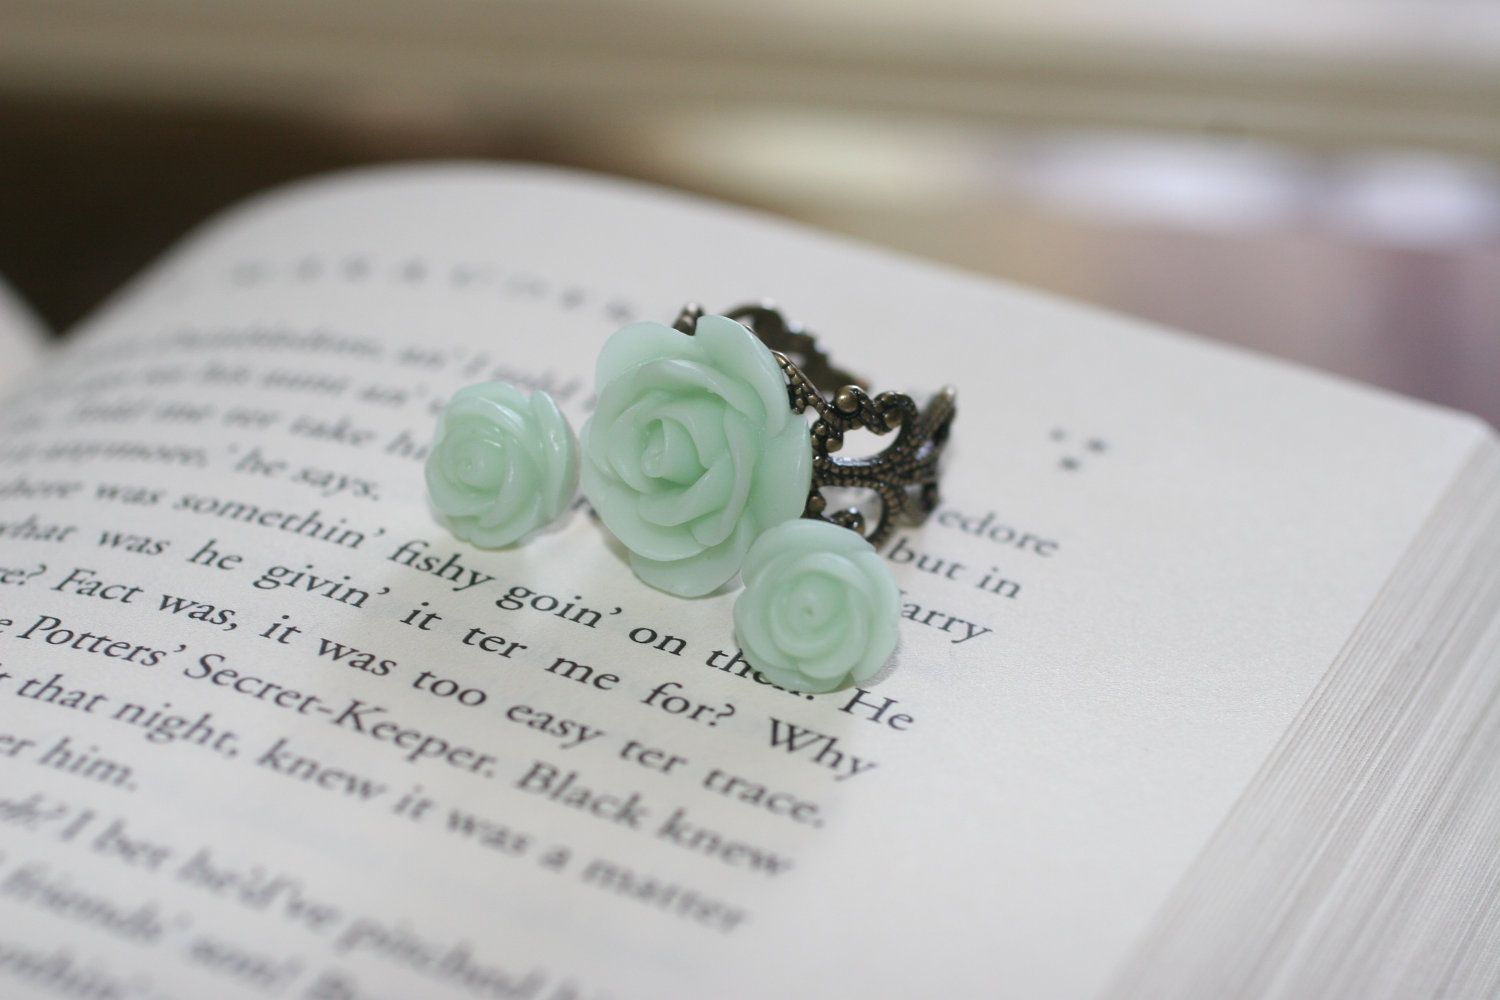 Another gorgeous rose ring. This one comes with earrings.